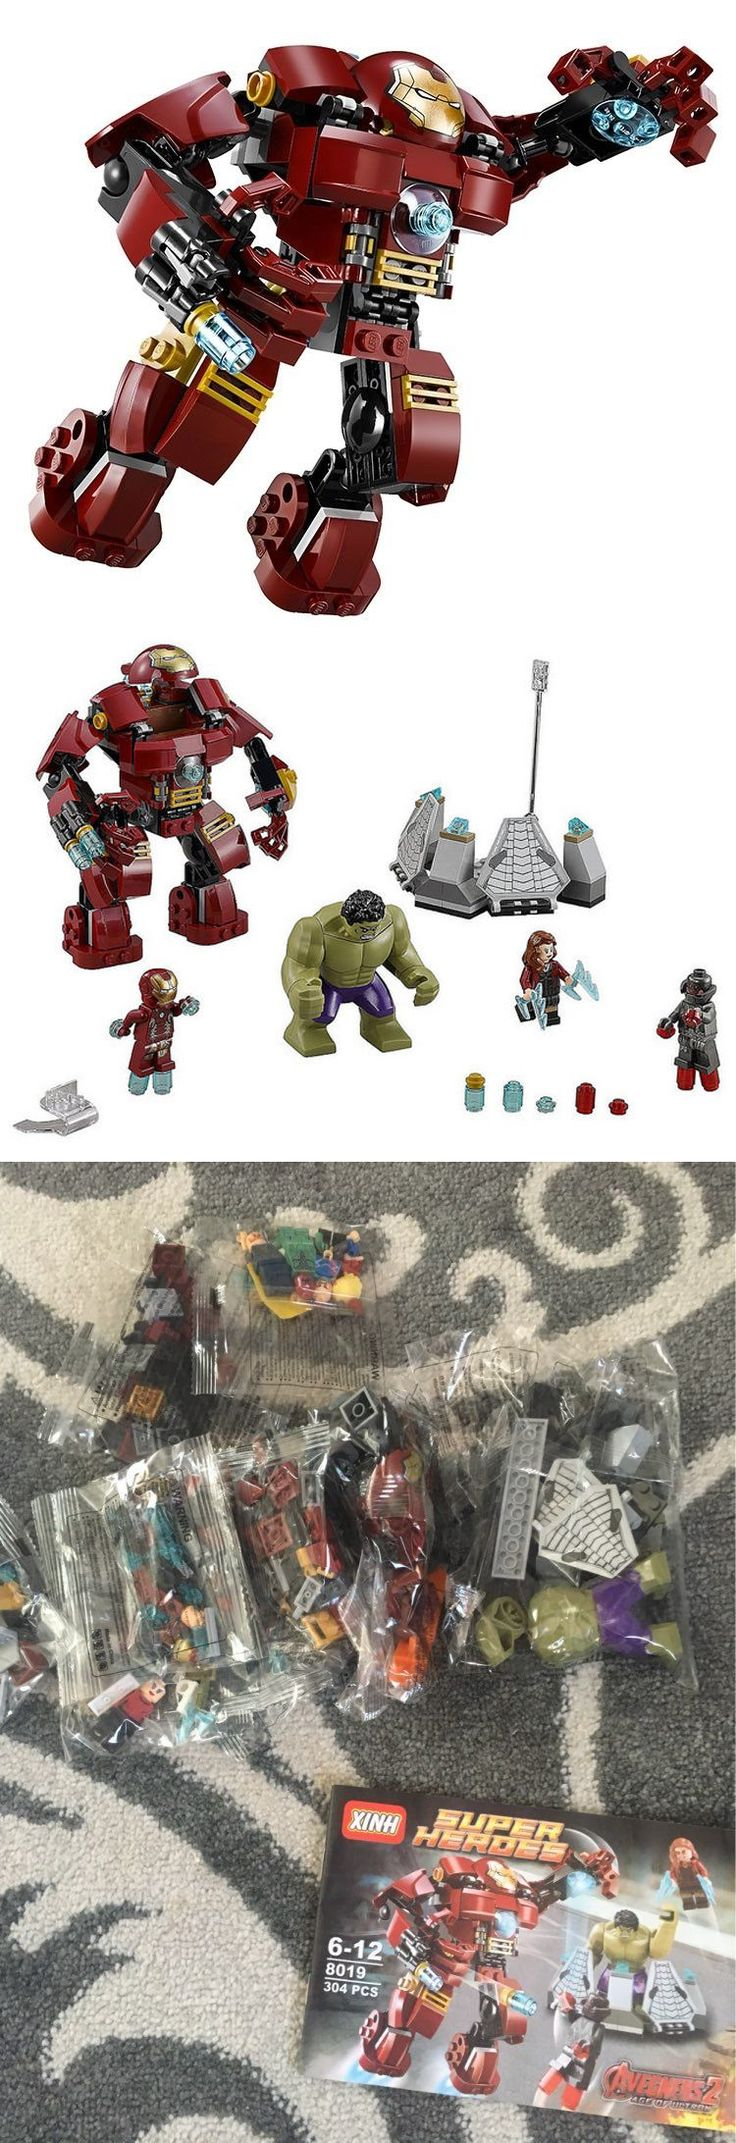 Other Building Toys 19015: Iron Man Hulkbuster Toy Gifts Brick Set For Kids | Lego Compatible Set -> BUY IT NOW ONLY: $39.9 on eBay!